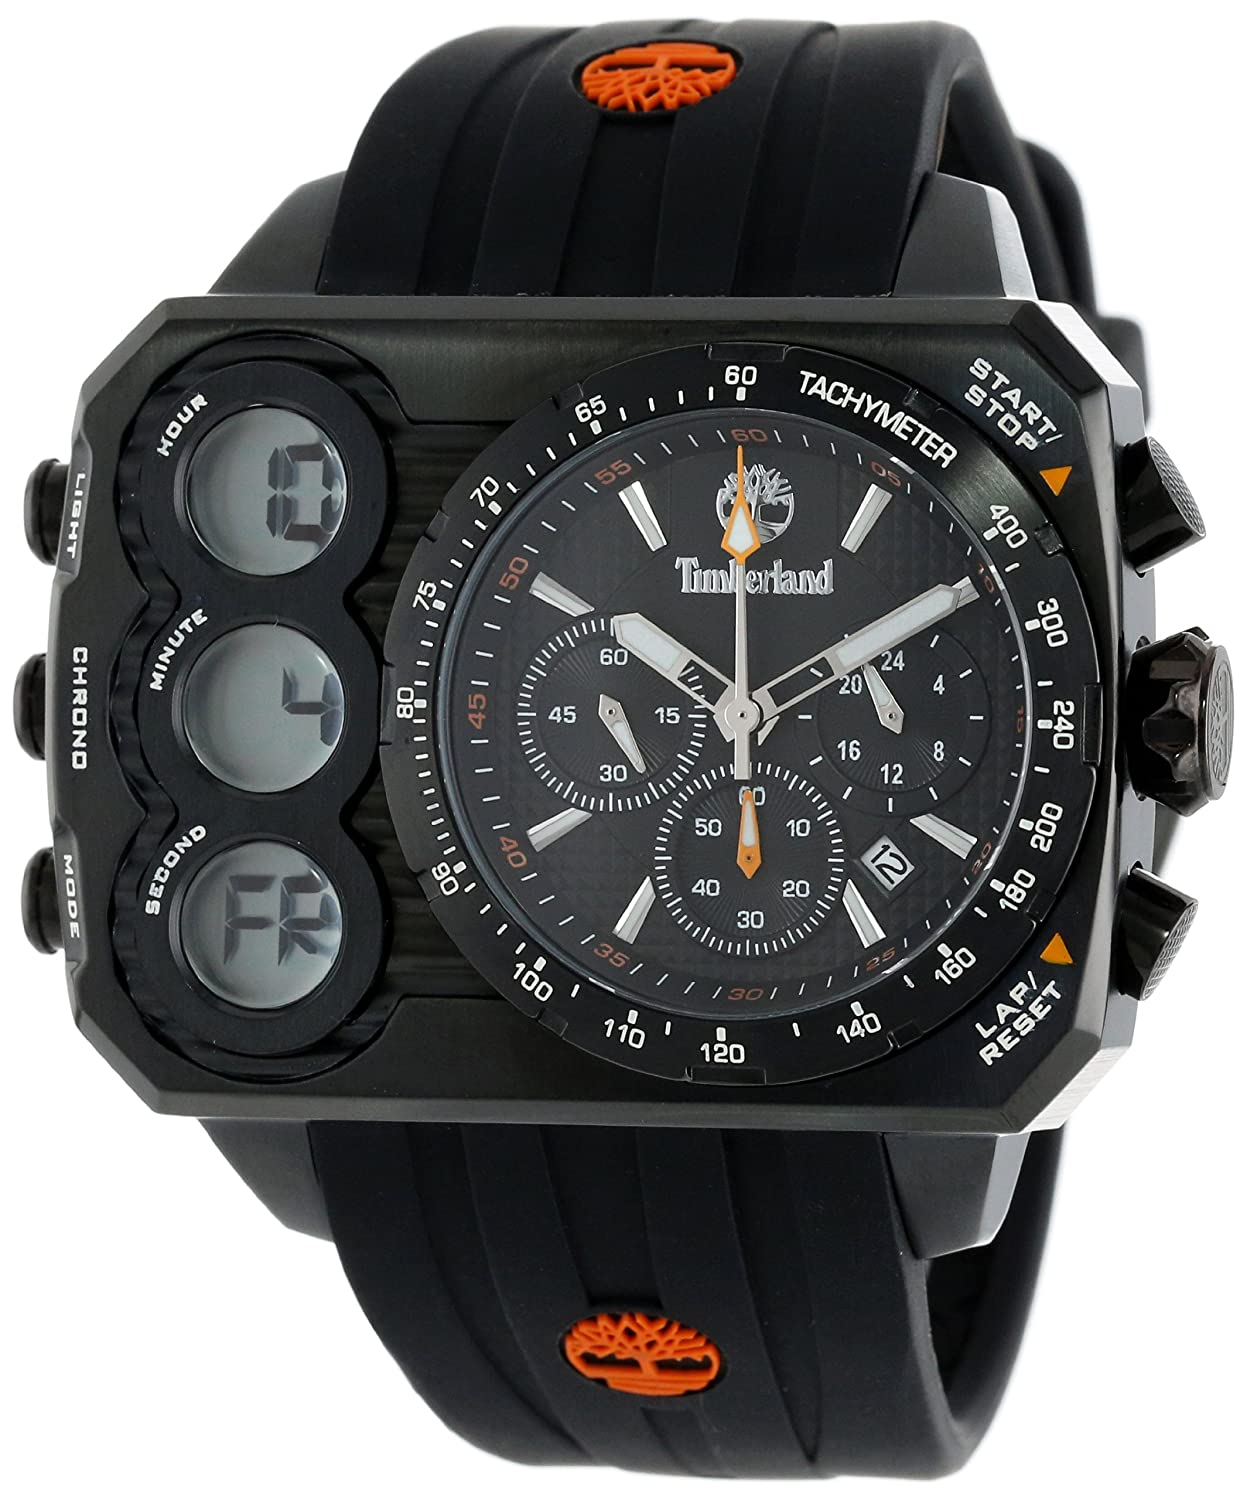 Amazon.com: Timberland Mens TBL_13673JSB_02S Ht3 Digital Chronograph 3 Hands Date Watch: Watches